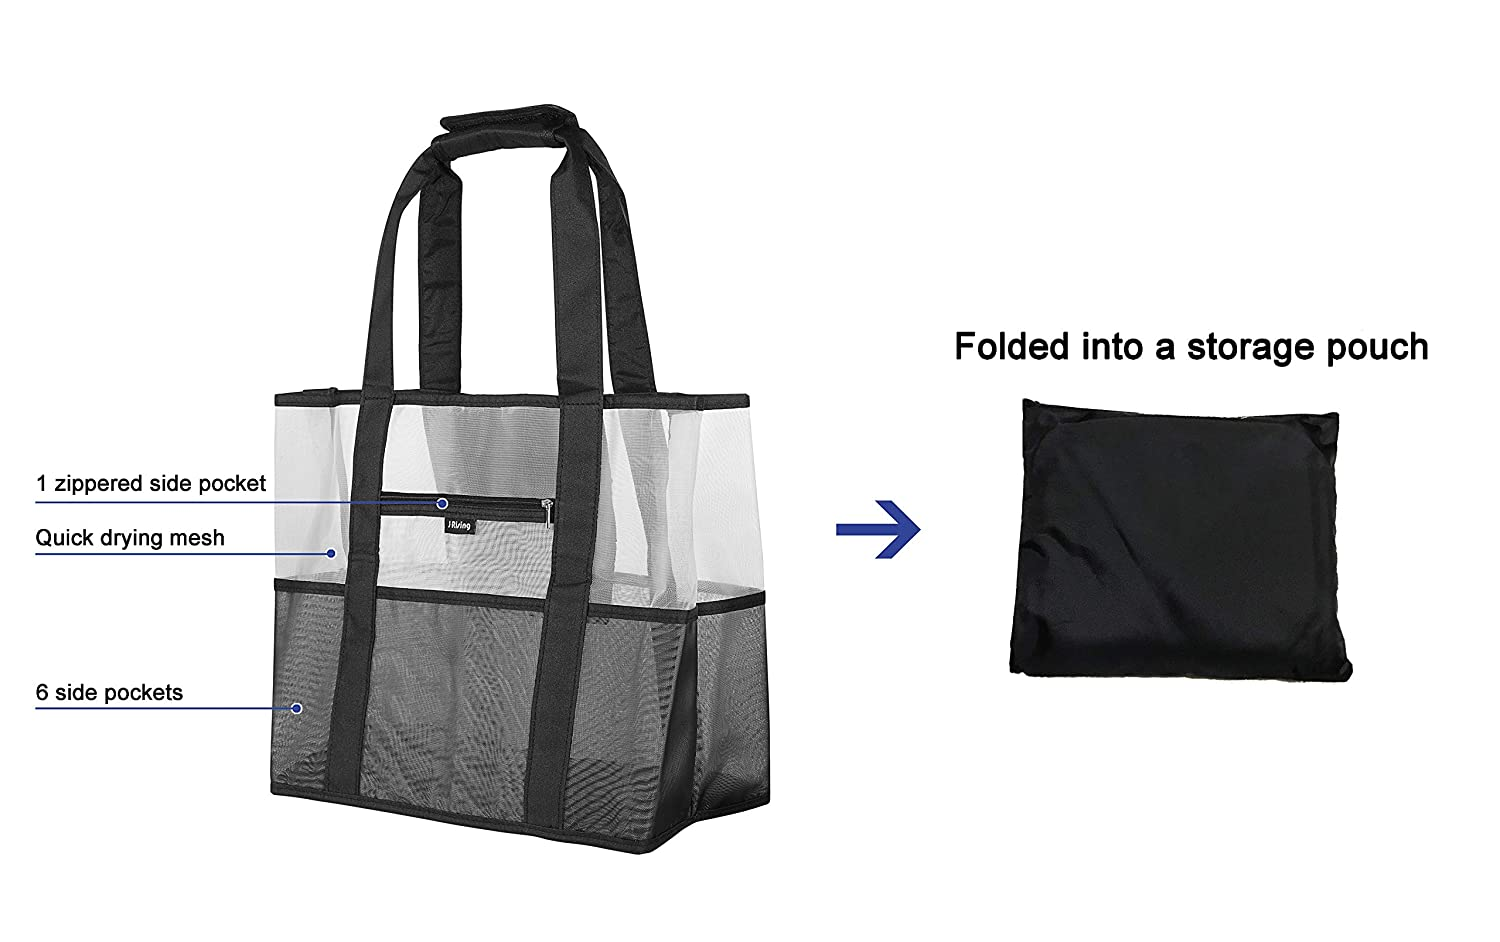 Mesh Tote Bag Heavy Duty Lightweight Foldable Large Toy Tote Bag Mom Bag with 8 Extra and Inside Pockets for Beach Swimming Pool Family Picnic Shopping Sports